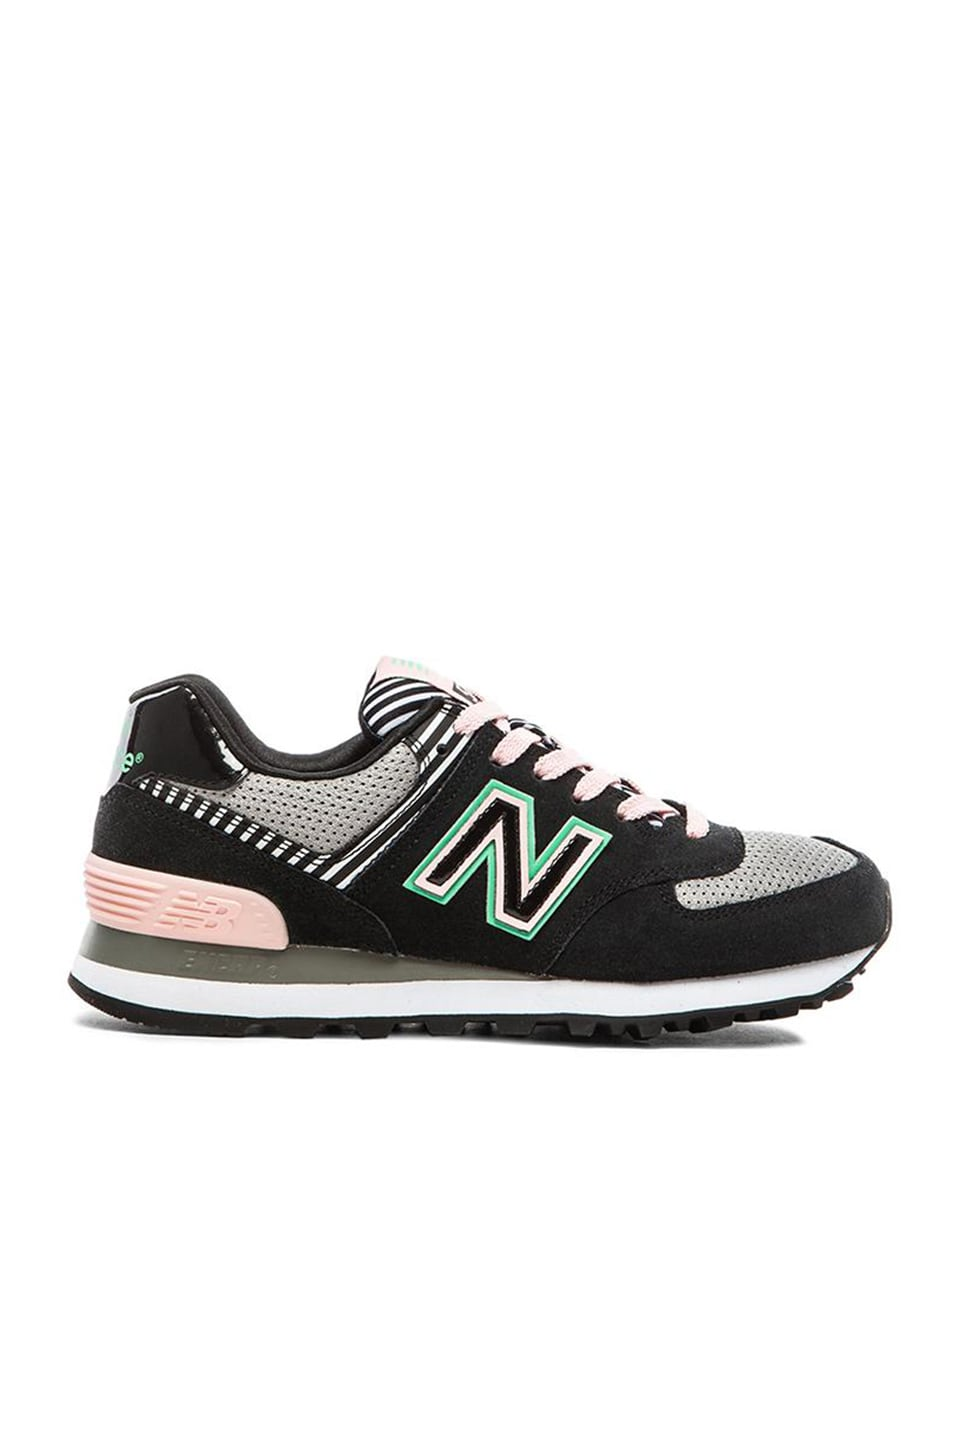 New Balance Palm Springs Collection Sneaker in Black & Pink